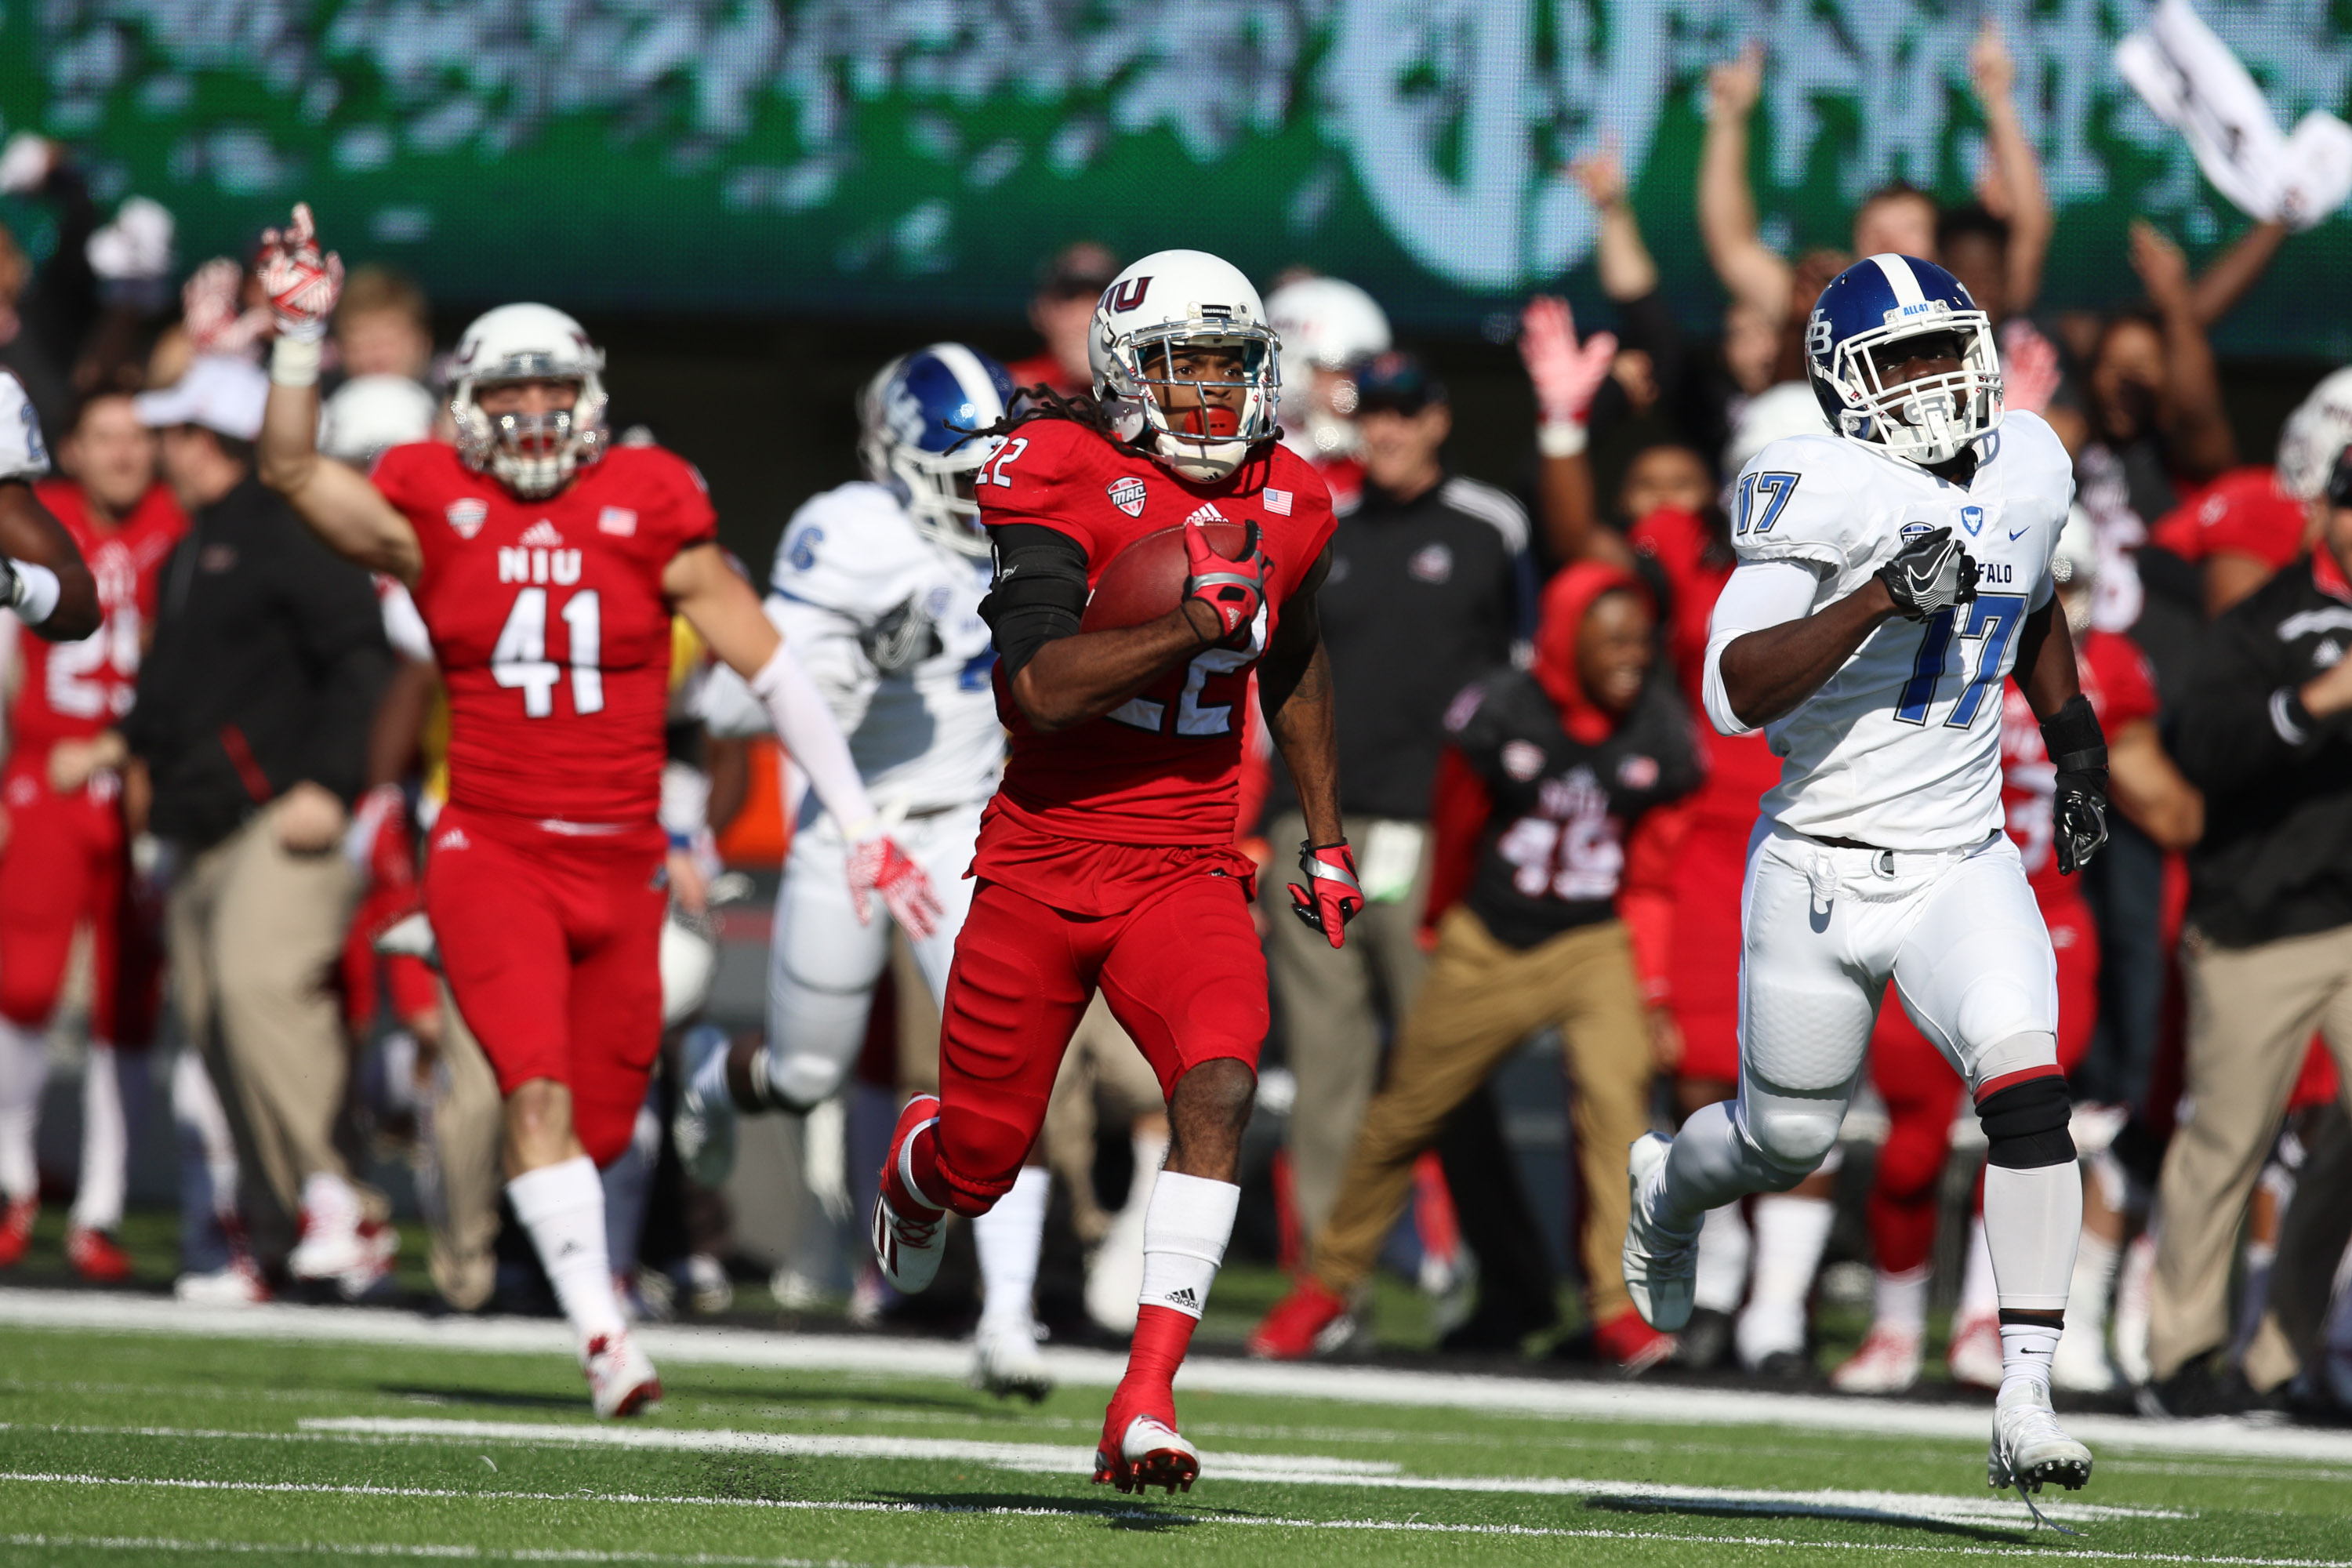 Northern Illinois wide receiver Aregeros Turner  returns the opening  kickoff for a touchdown.